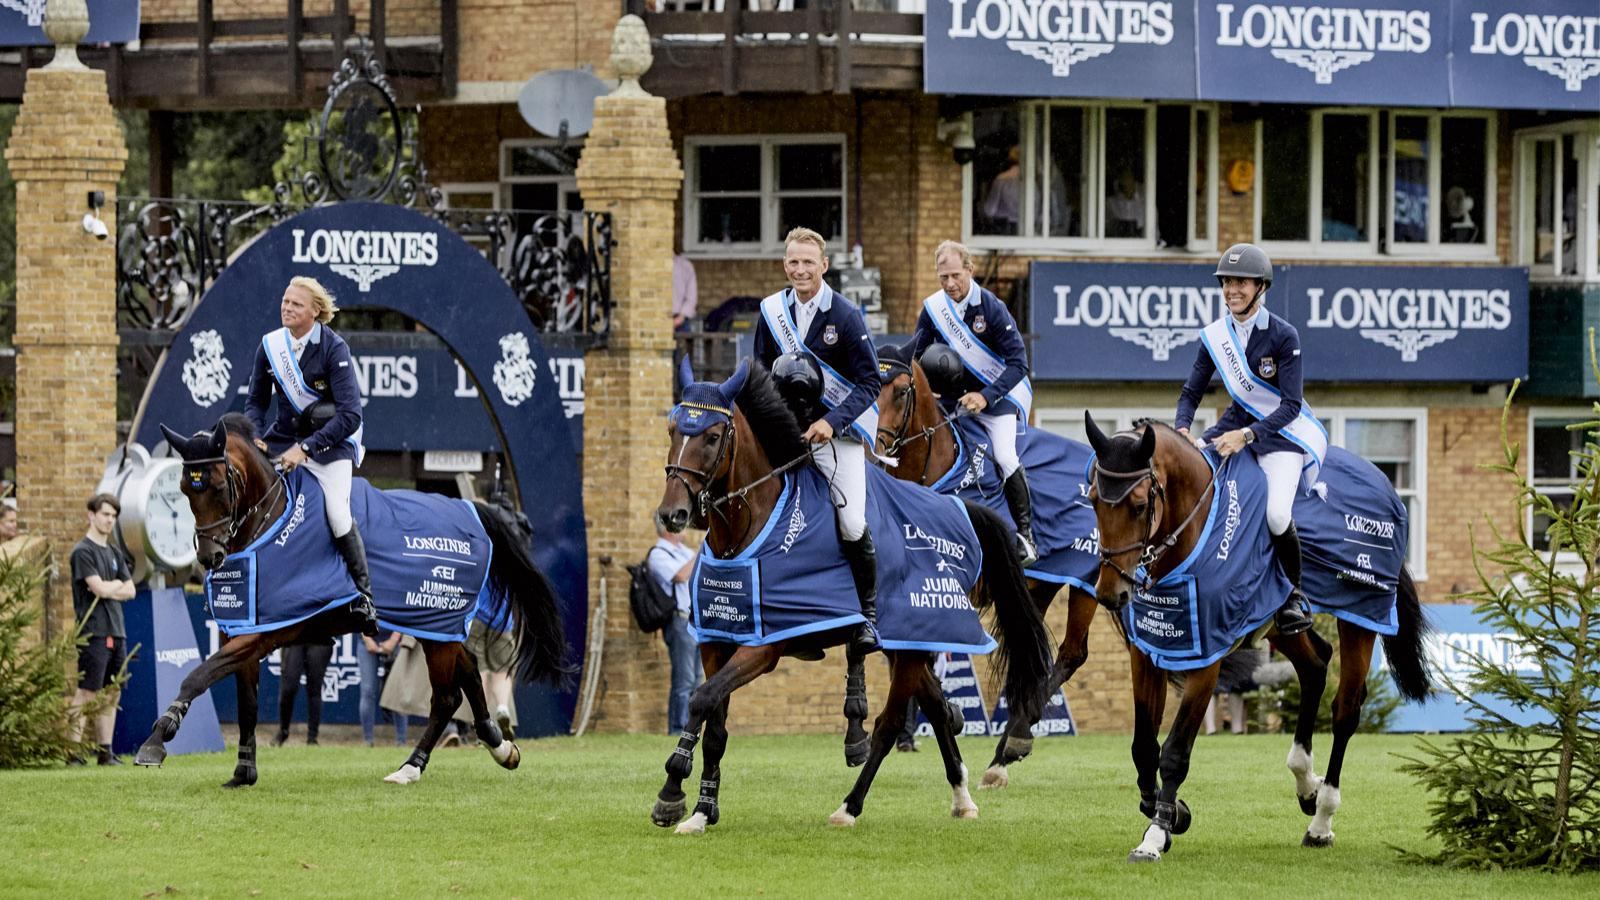 Longines FEI Jumping Nations Cup of Great Britain The Longines Royal International Horse Show; Jumping; 2019